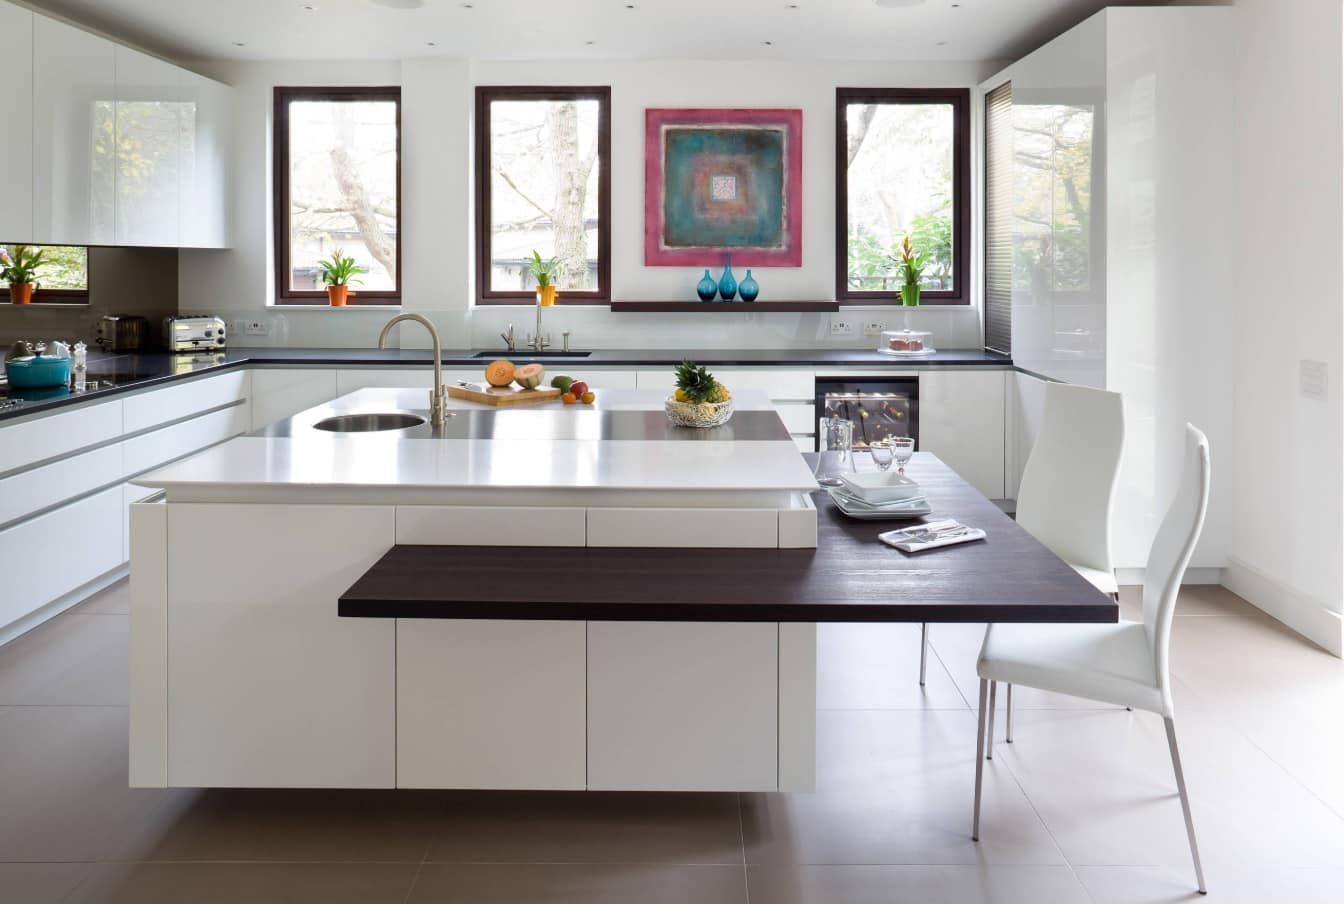 Modern Kitchen Sink Design within Stylish Interior. Black wooden skirting of the square island